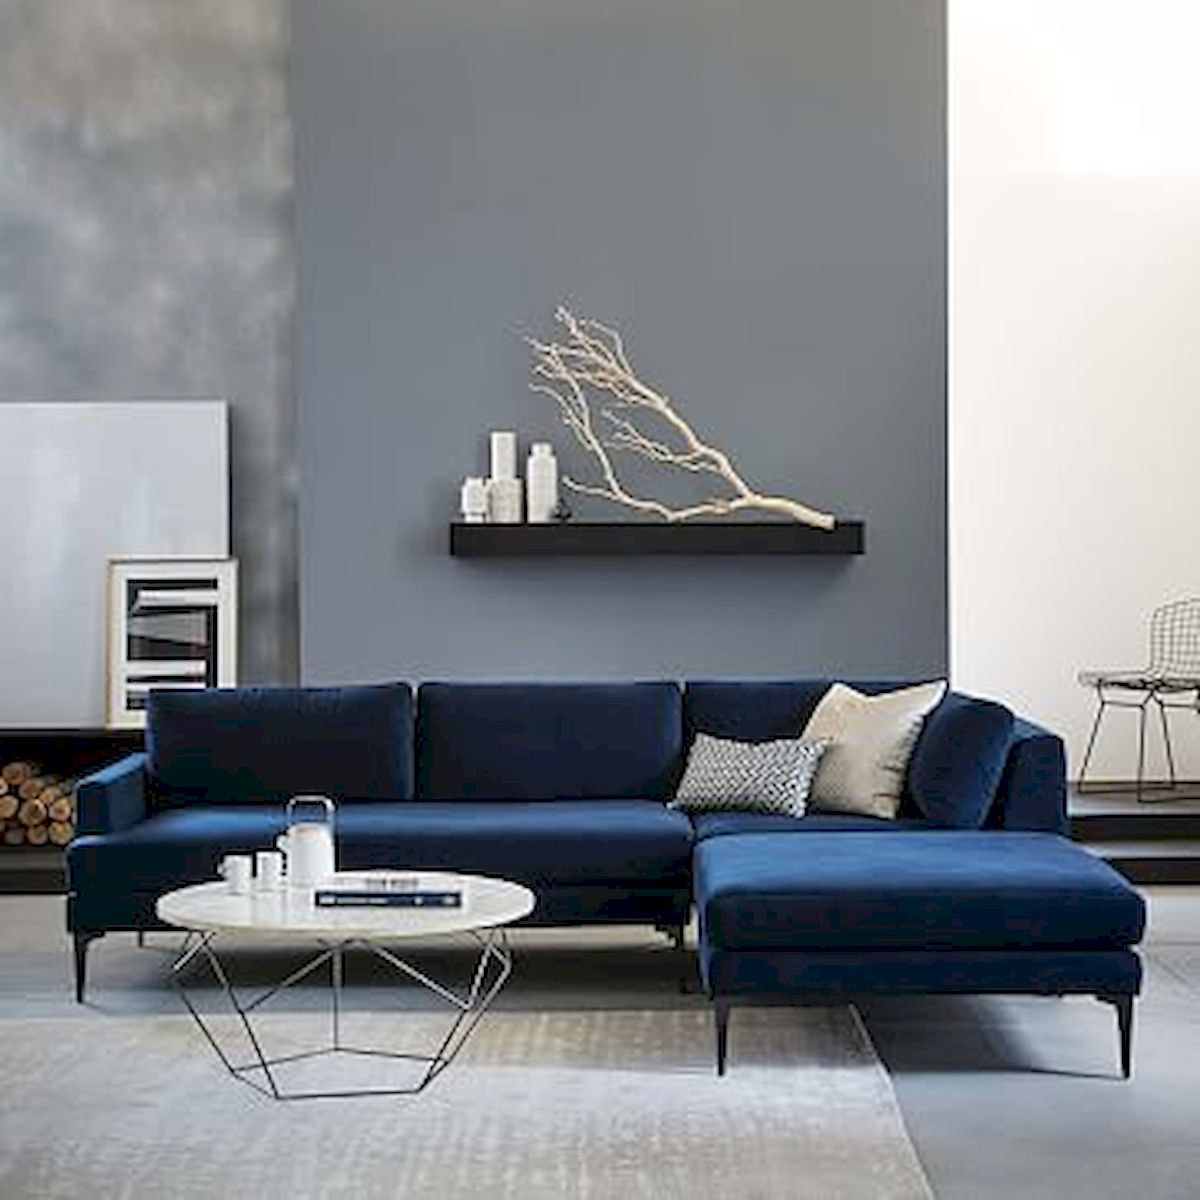 60 Living Room Decor Ideas With Artwork Coffee Tables (43)